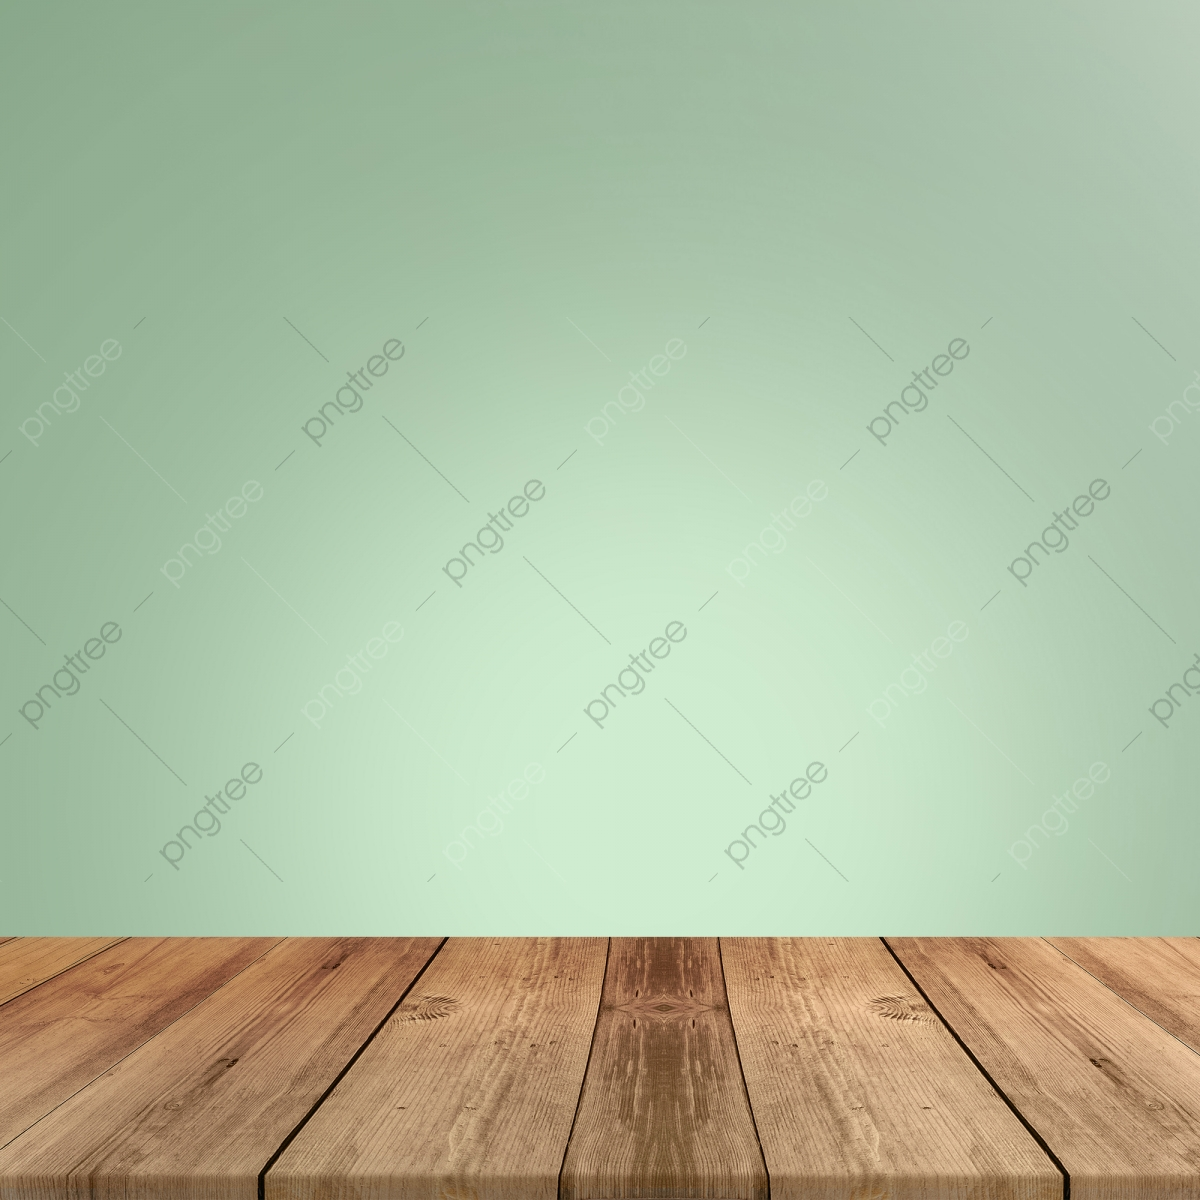 Green Wood Floor Texture Background Floor Product Texture Png Transparent Clipart Image And Psd File For Free Download